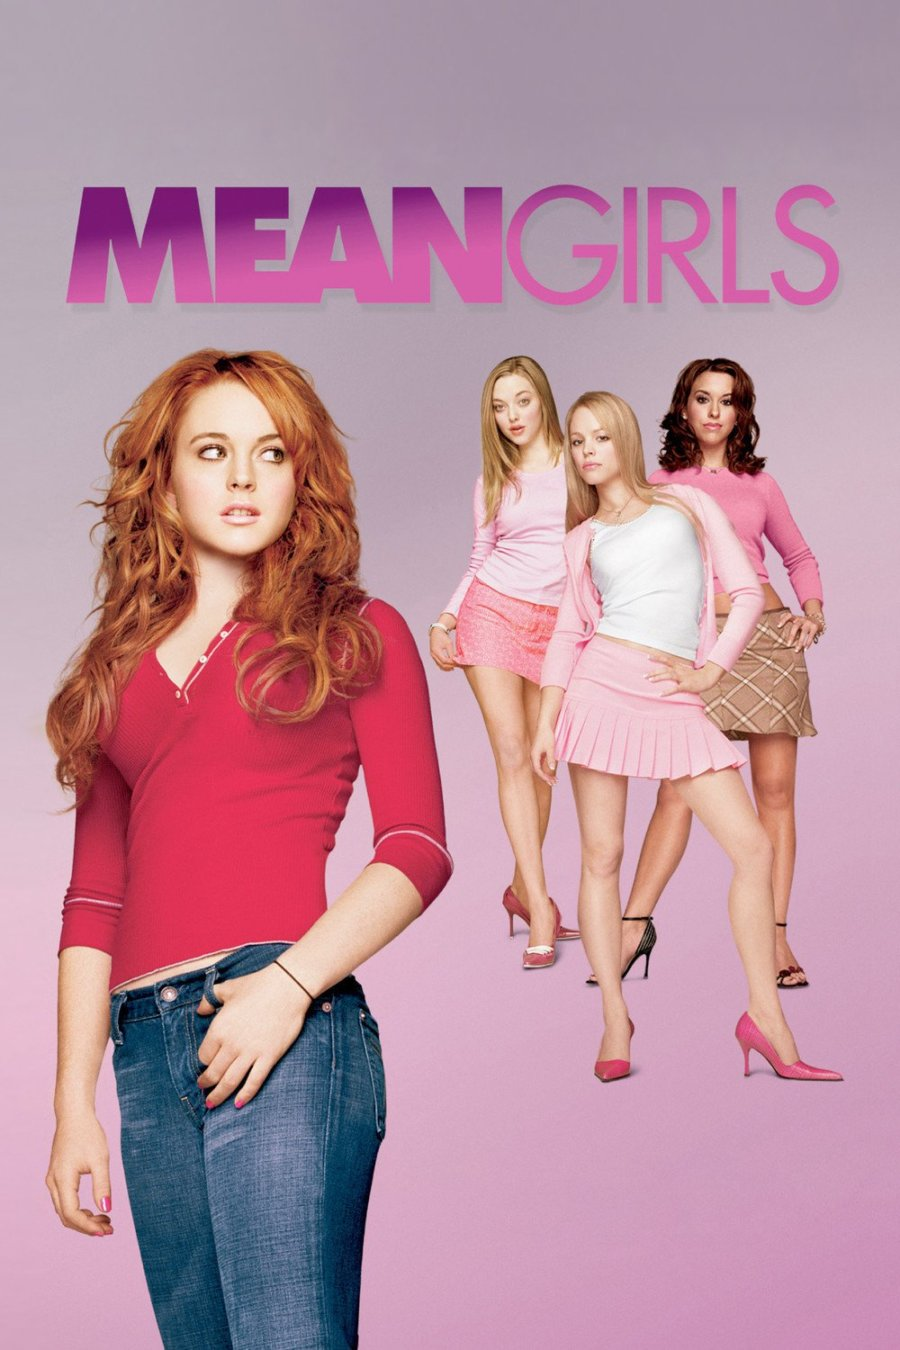 Teen comedy Mean Girls, directed by mark Waters and written by Tina Fey, became an instant international hit when released in 2004